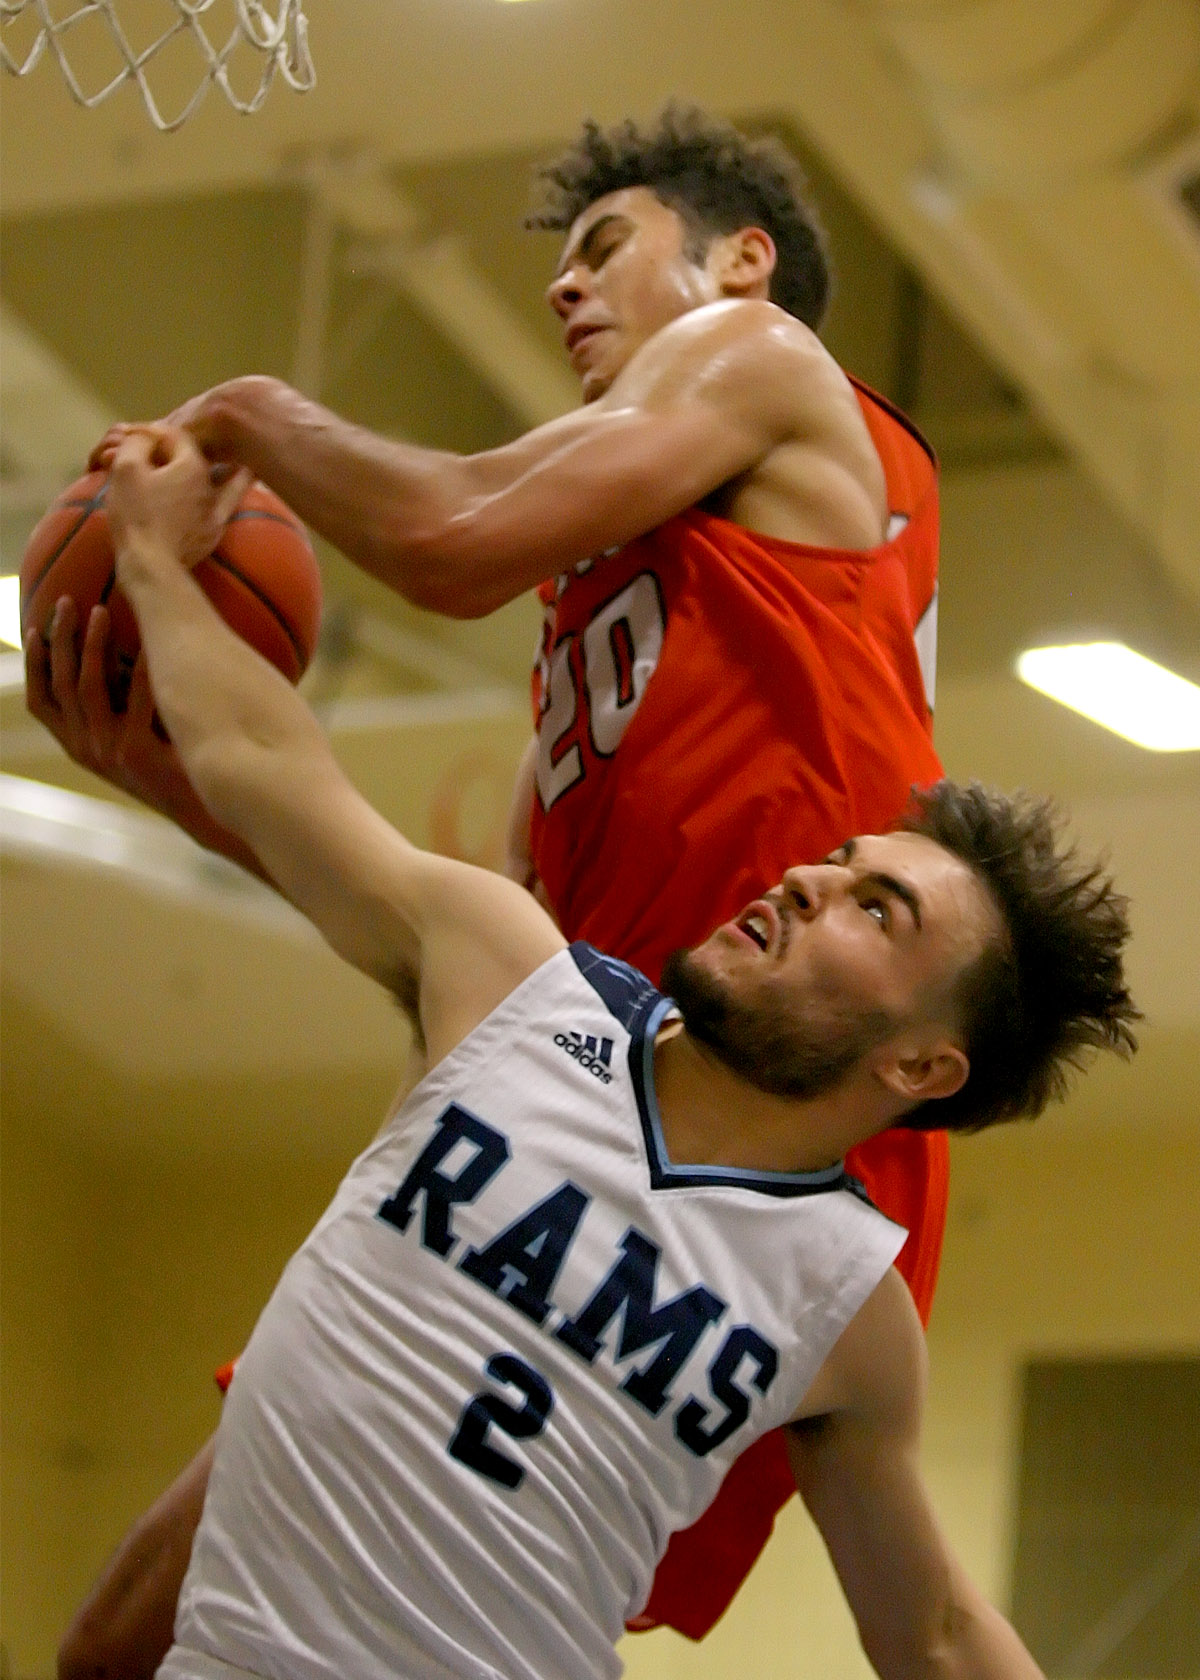 Vincent Orsillo of Mt Rainier reaches back for the ball against Battle Ground's Kaden Perry